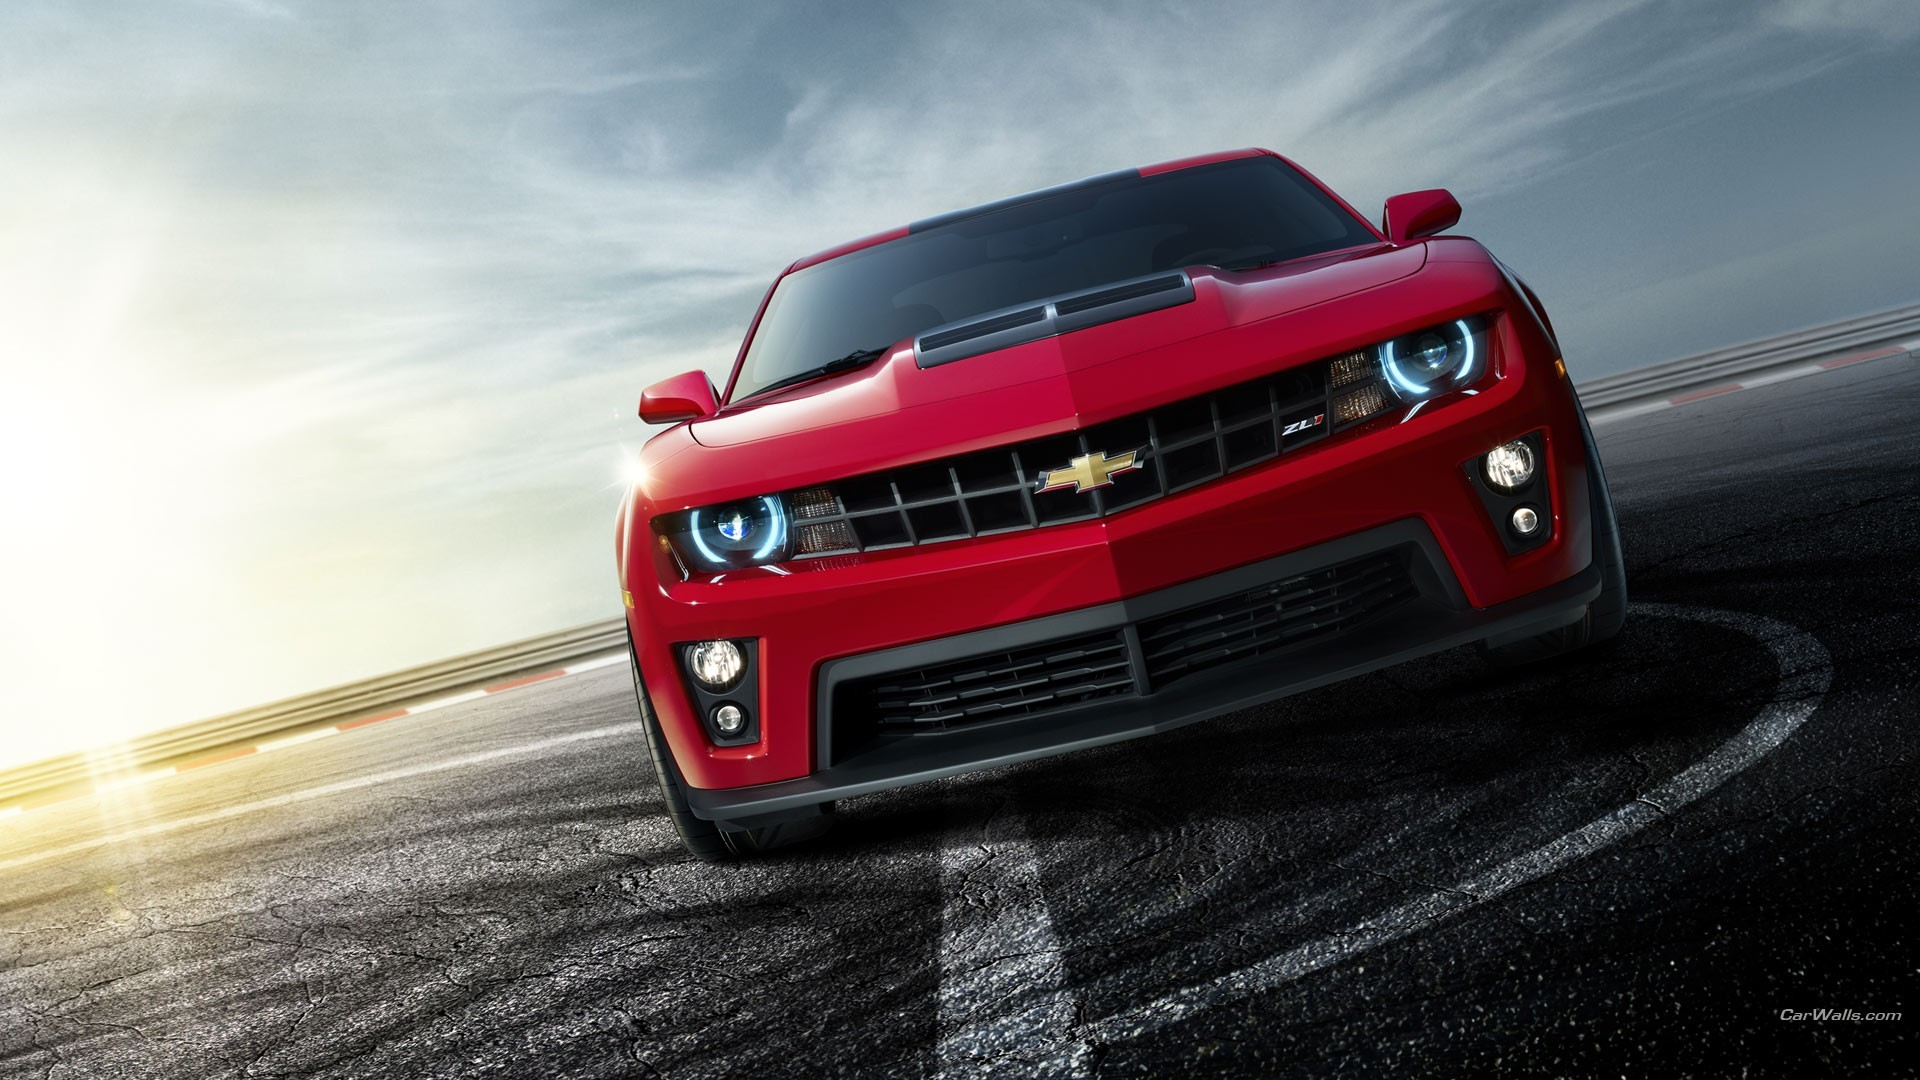 Chevrolet Cars Front View Roads Vehicles Wallpaper Allwallpaperin